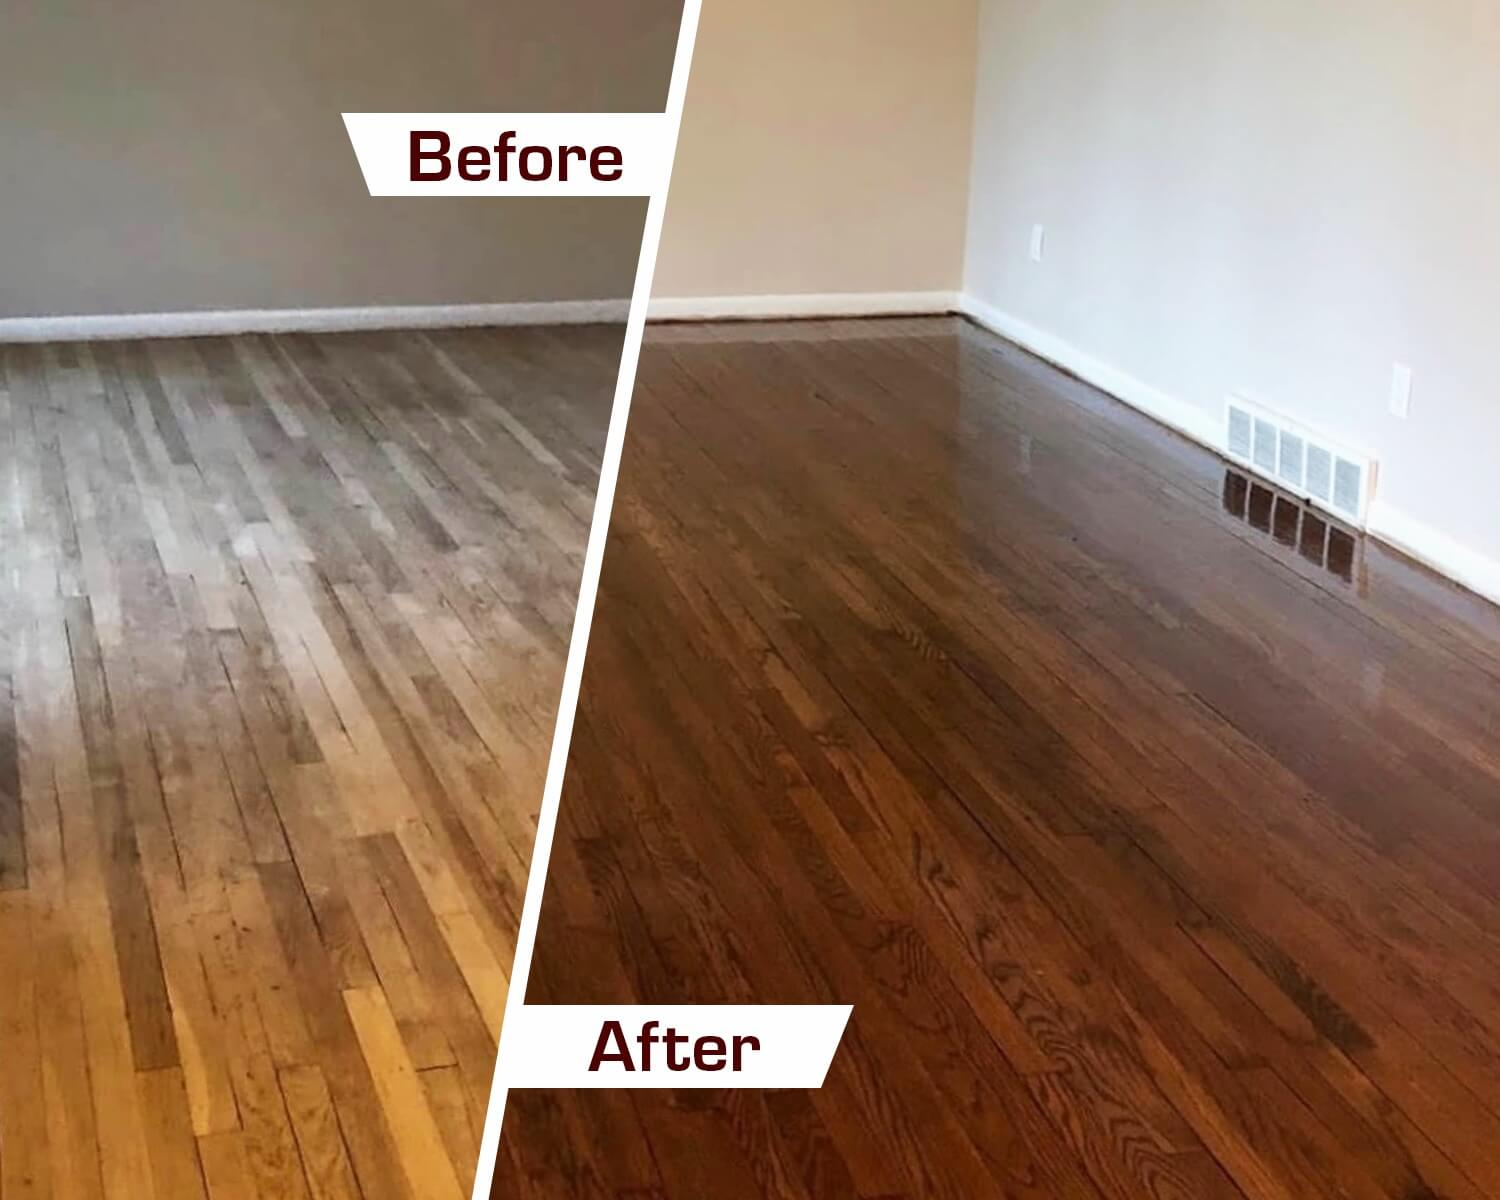 Refinish wood floors in Pittsburgh, PA